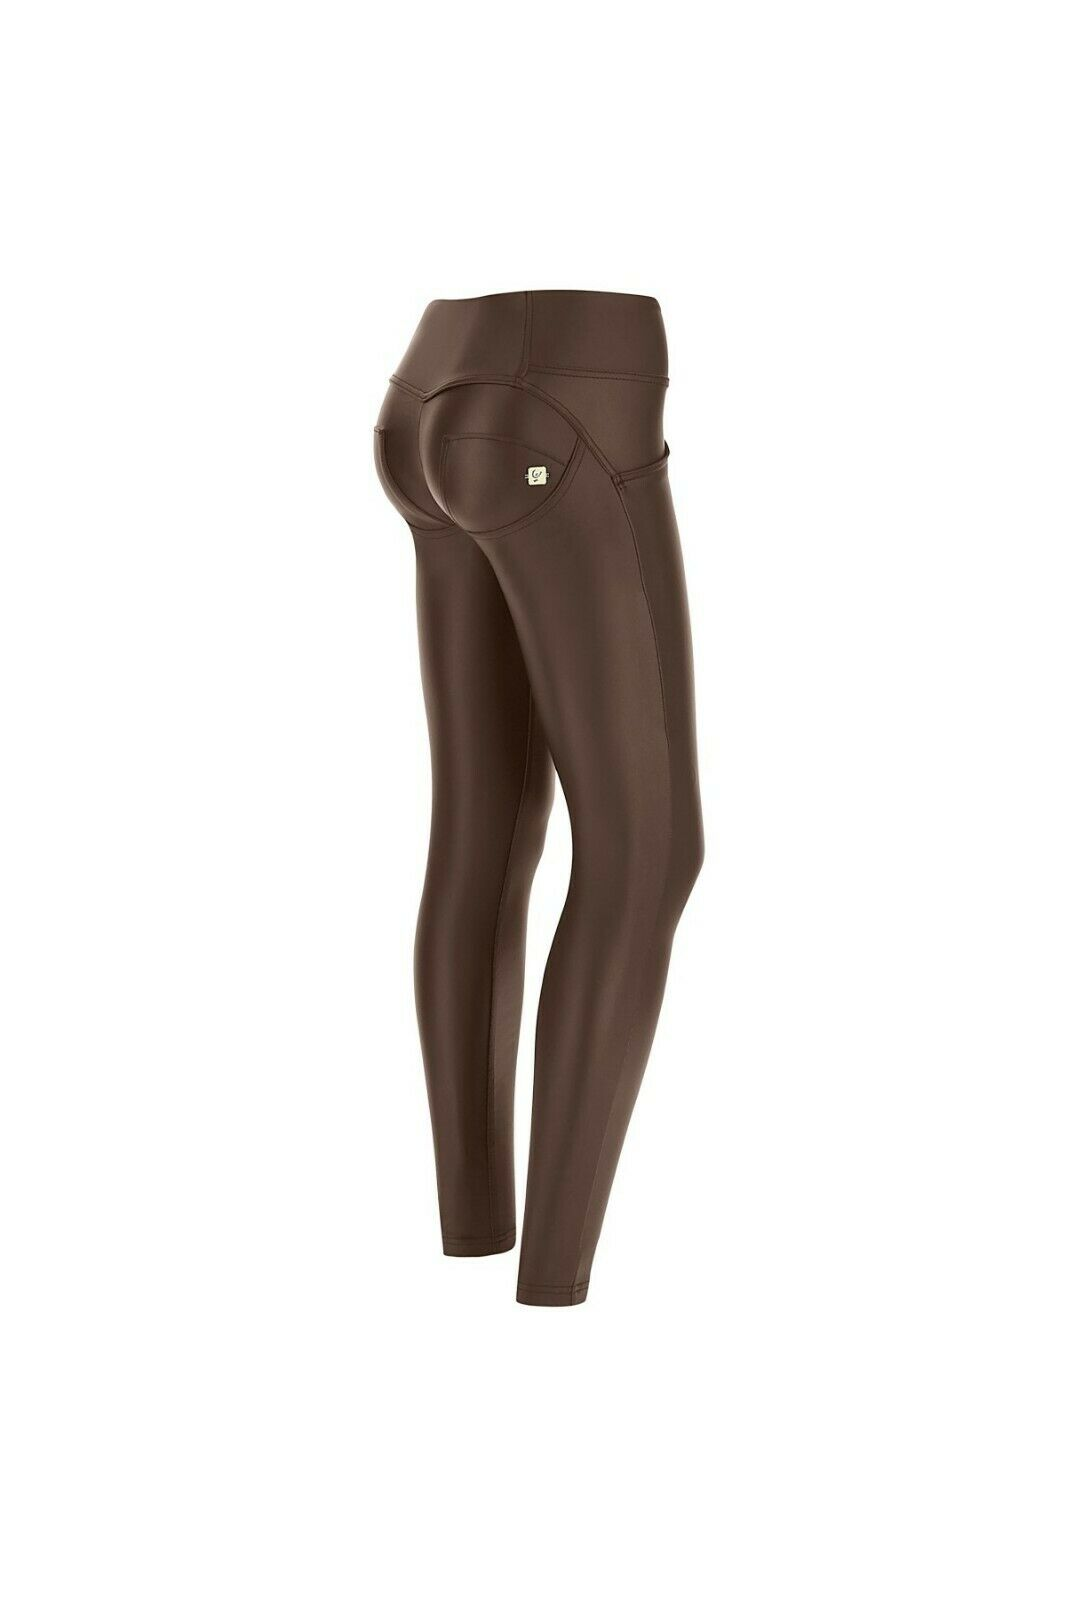 FREDDY WR.UP® SHAPING EFFECT PANTS - MID WAIST - SKINNY FIT - FAUX LEATHER BROWN